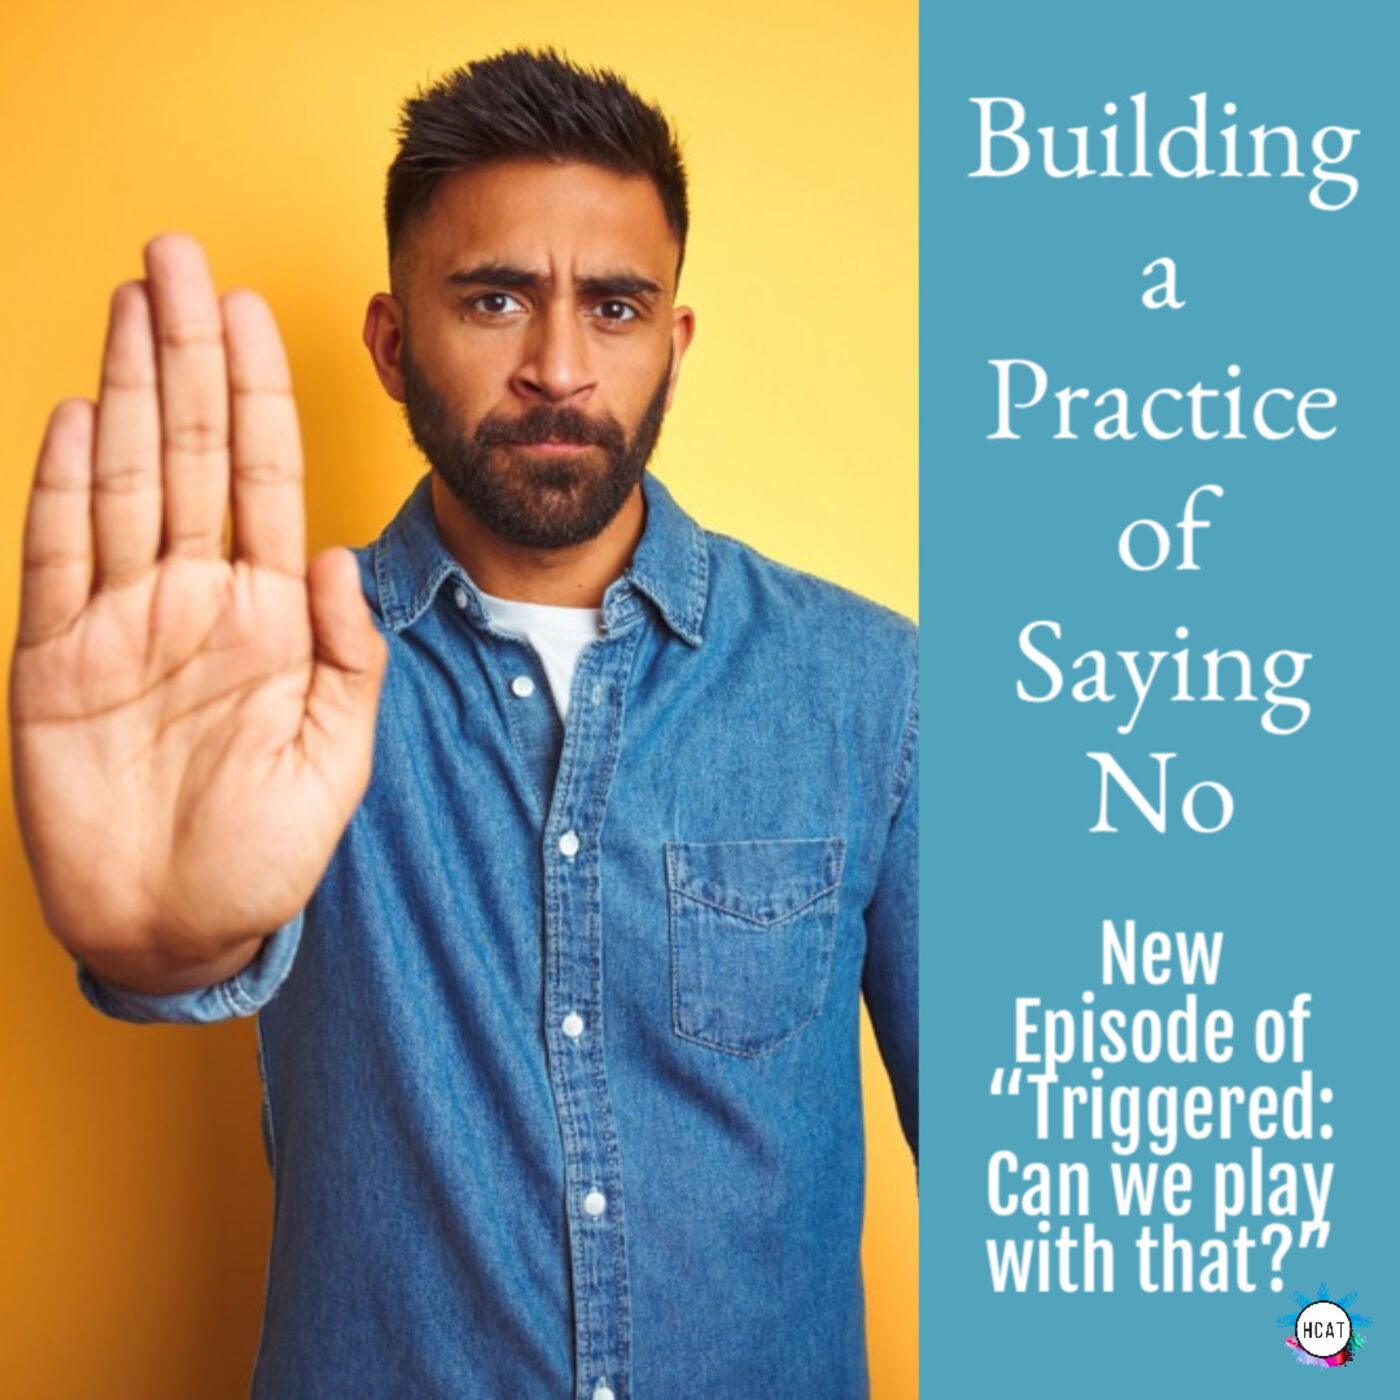 Building a Practice of Saying No, Part 1